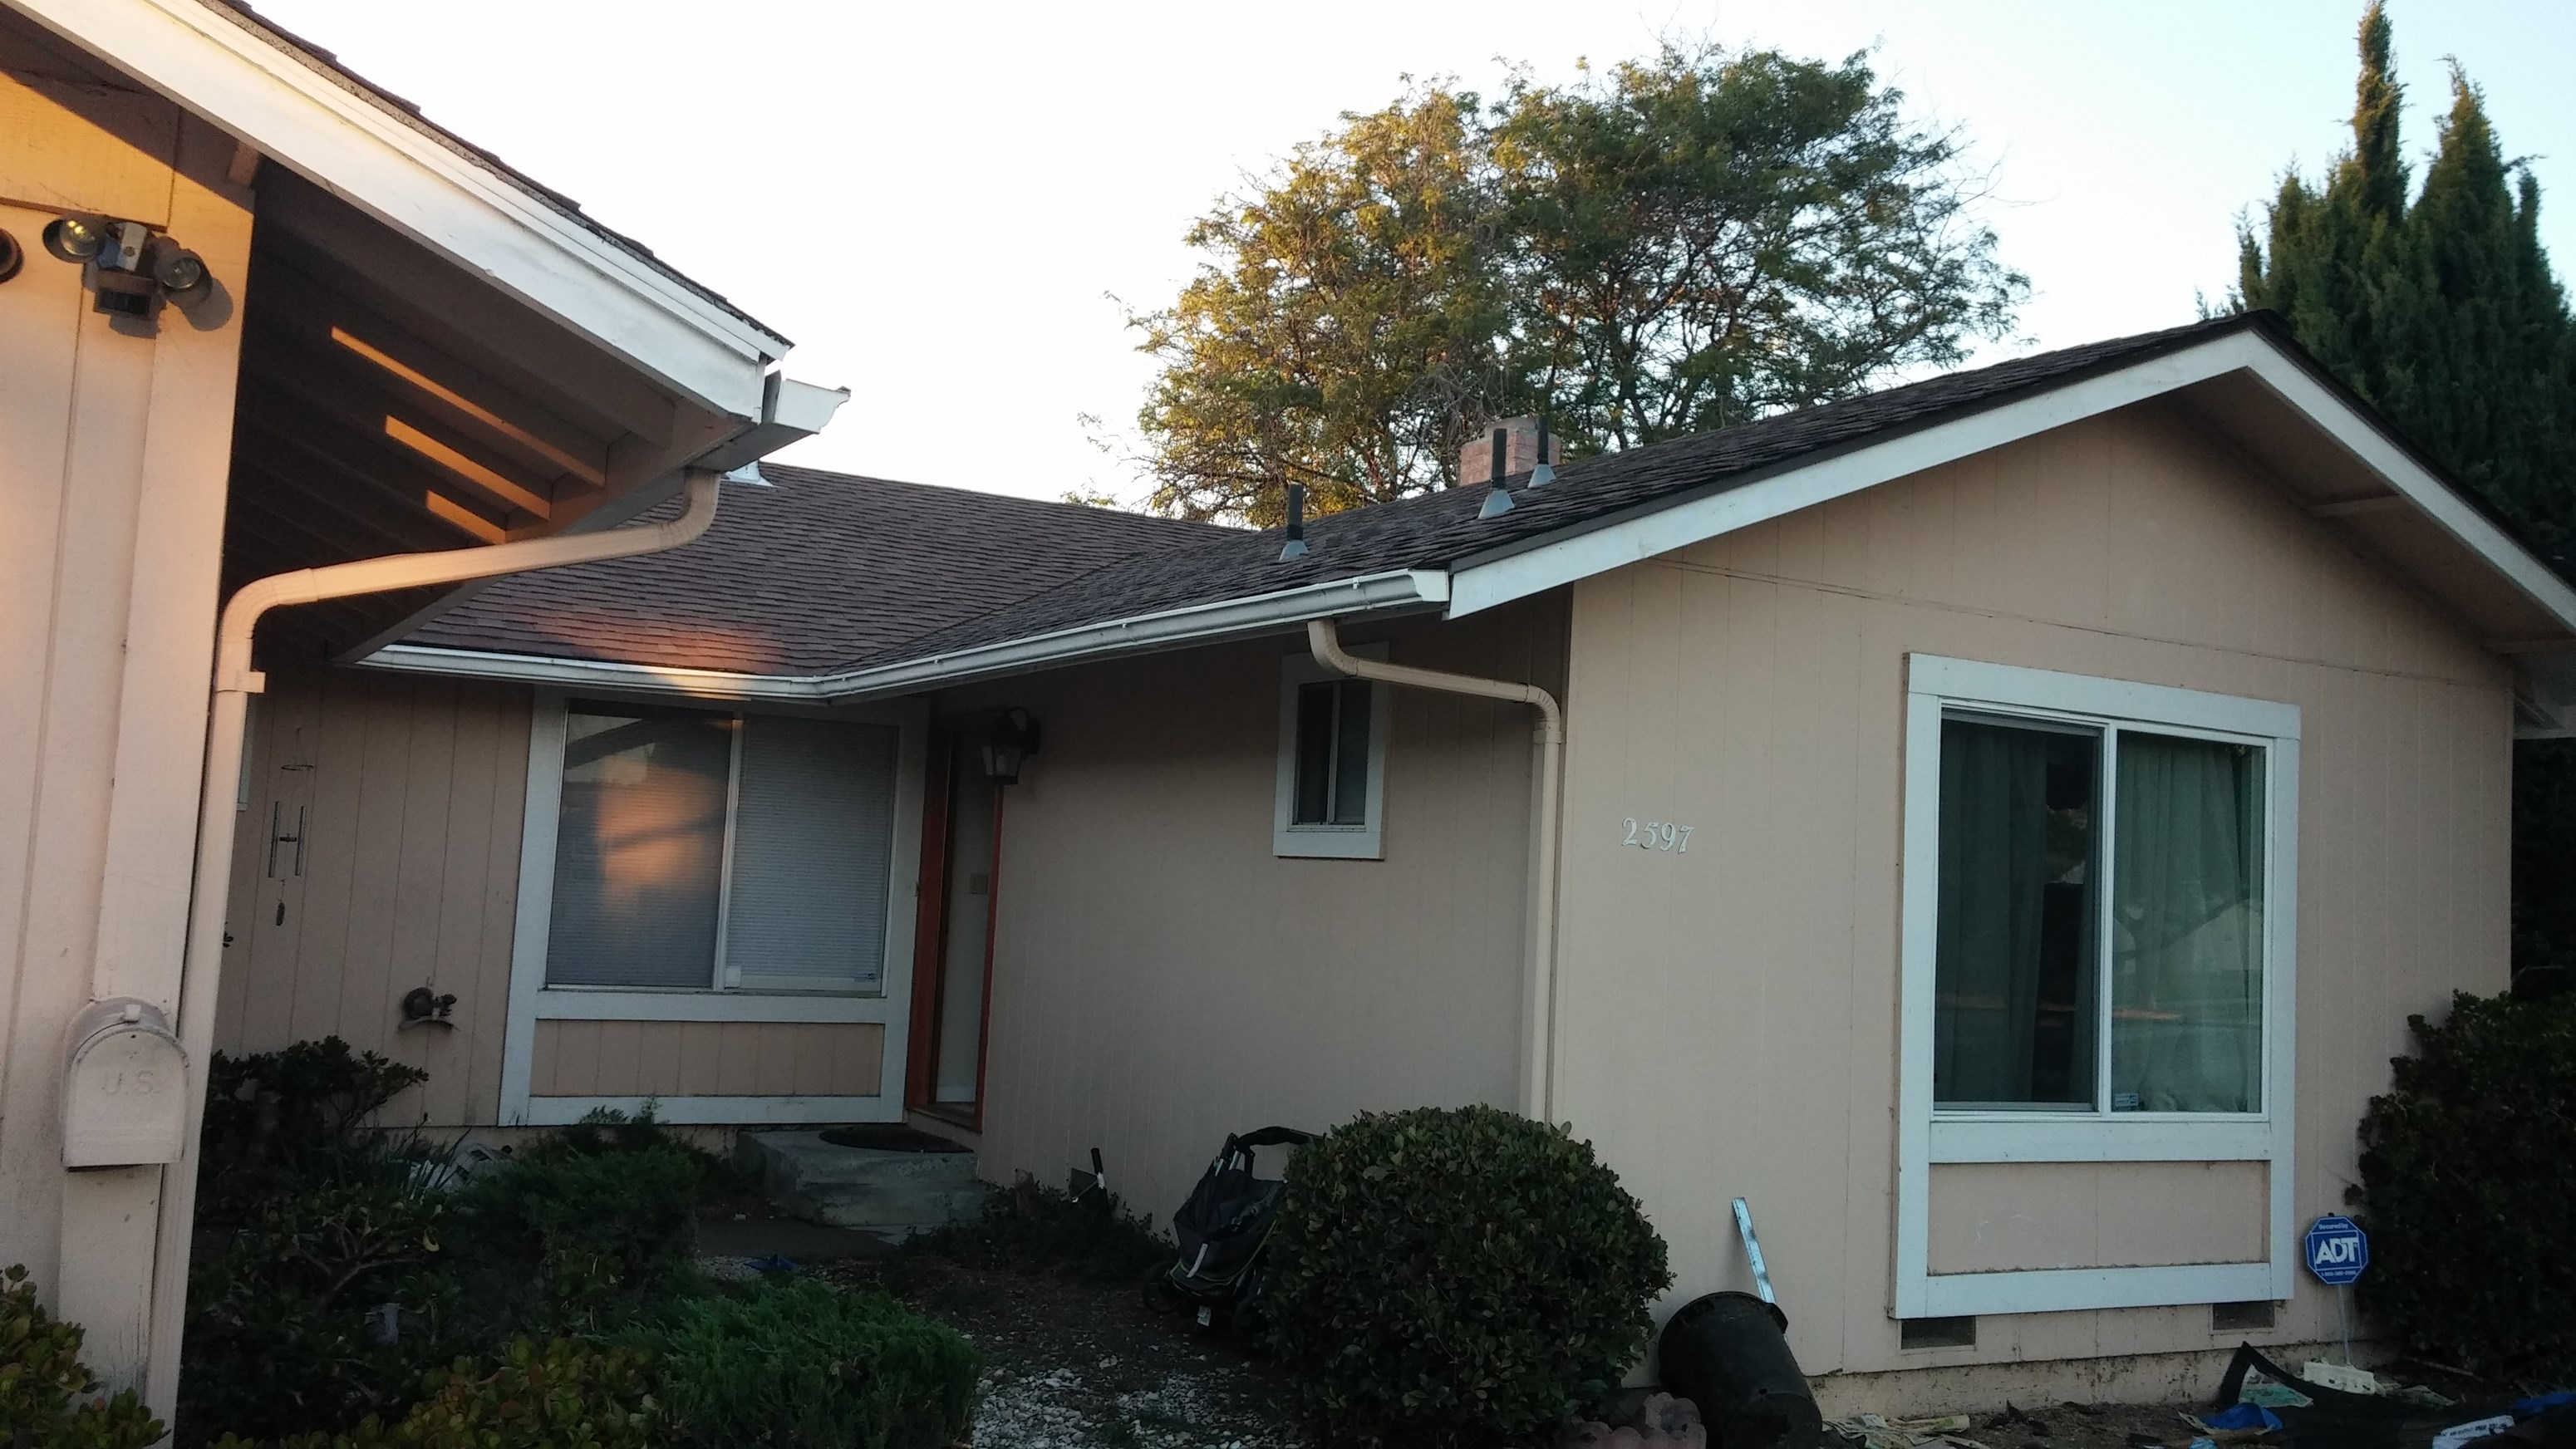 Accommodation Is Available For 2 Months For 1 Male In 2bed 2 Bath Apartment In Fremont In